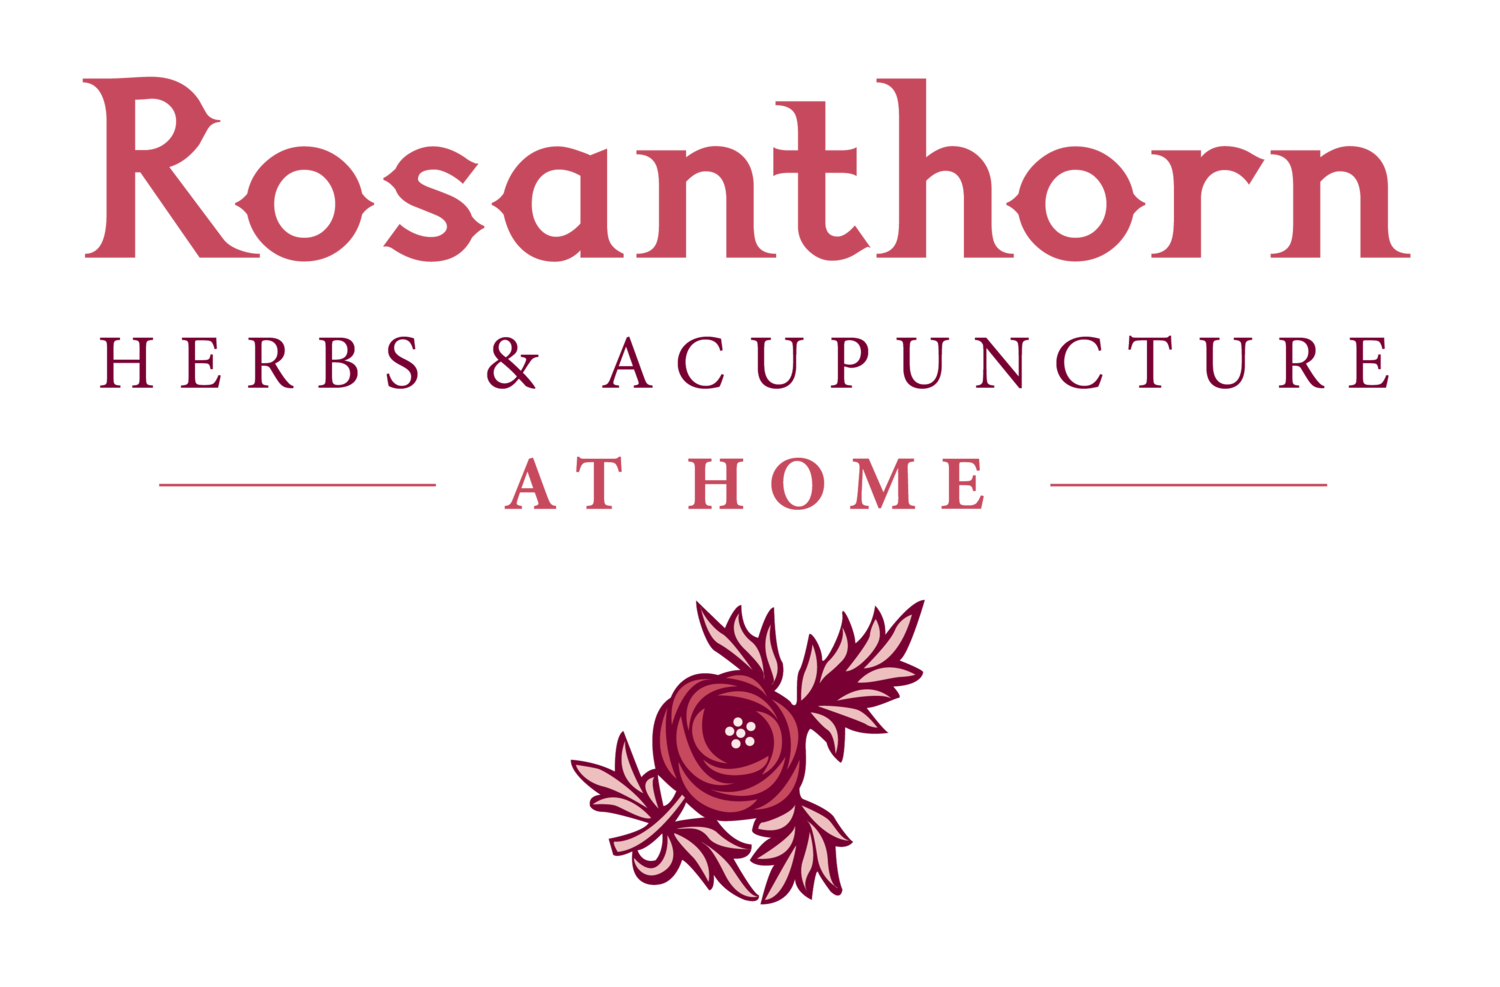 Rosanthorn Herbs & Acupuncture at Home